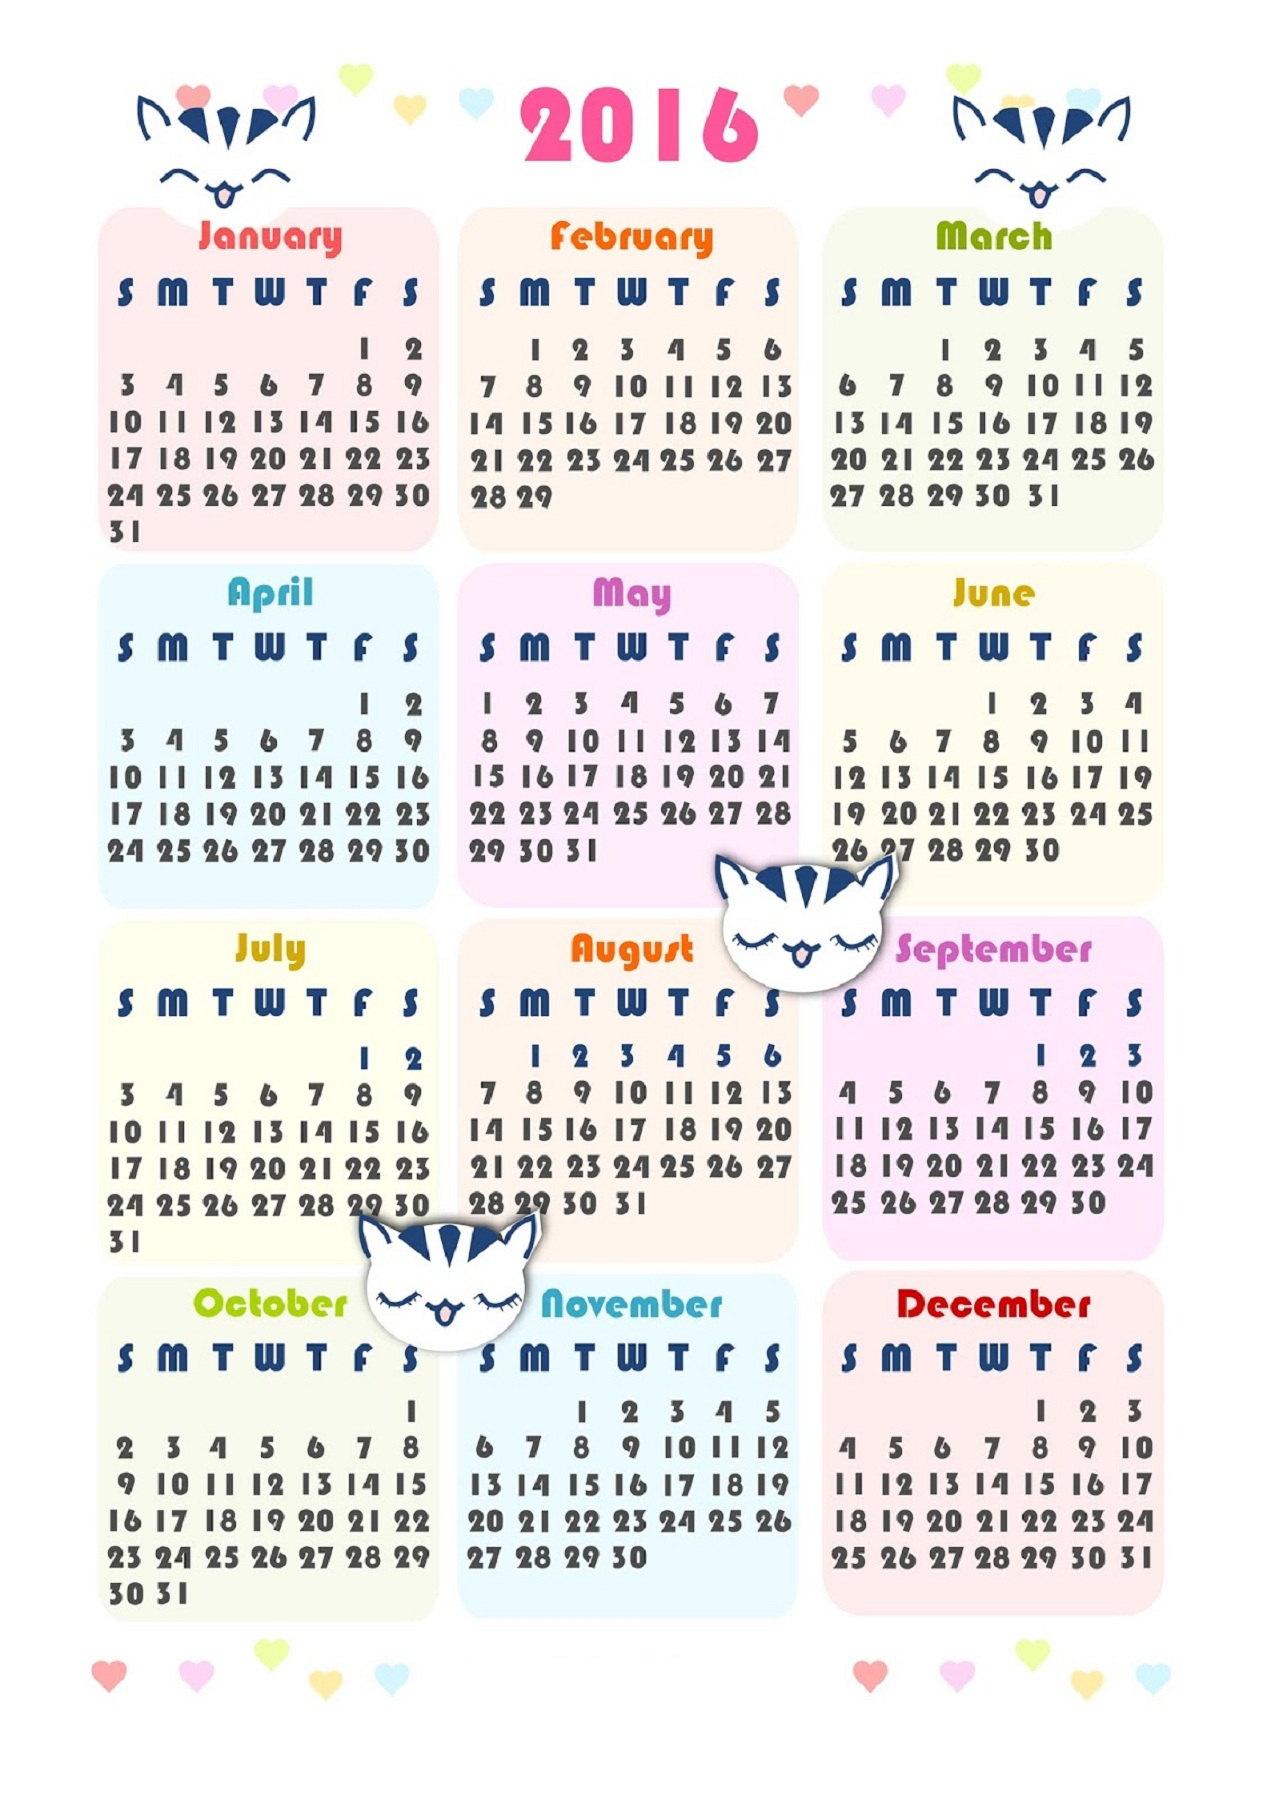 2016 Calendar Printable One Page | Activity Shelter within Calendar Printable One Page Templates